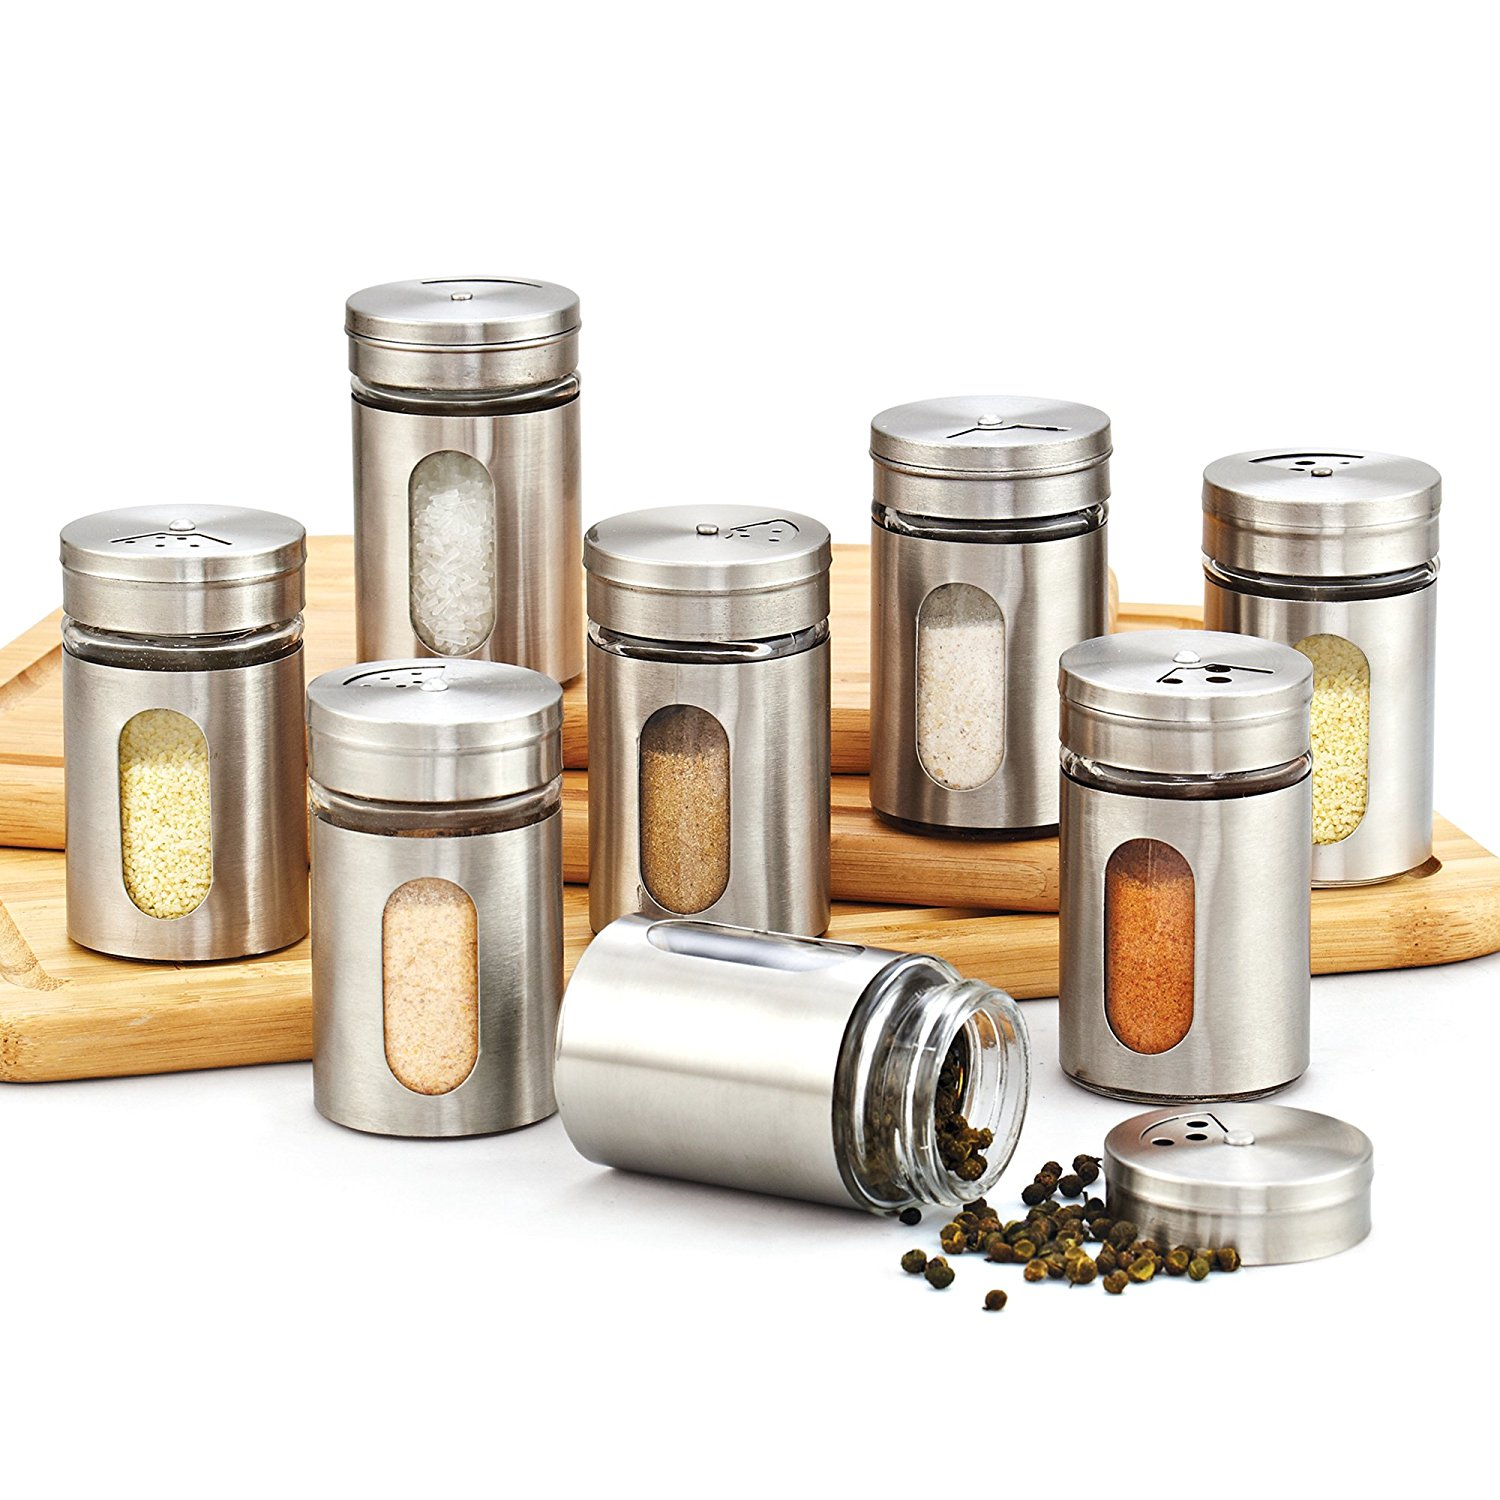 Stainless Spice Bottles